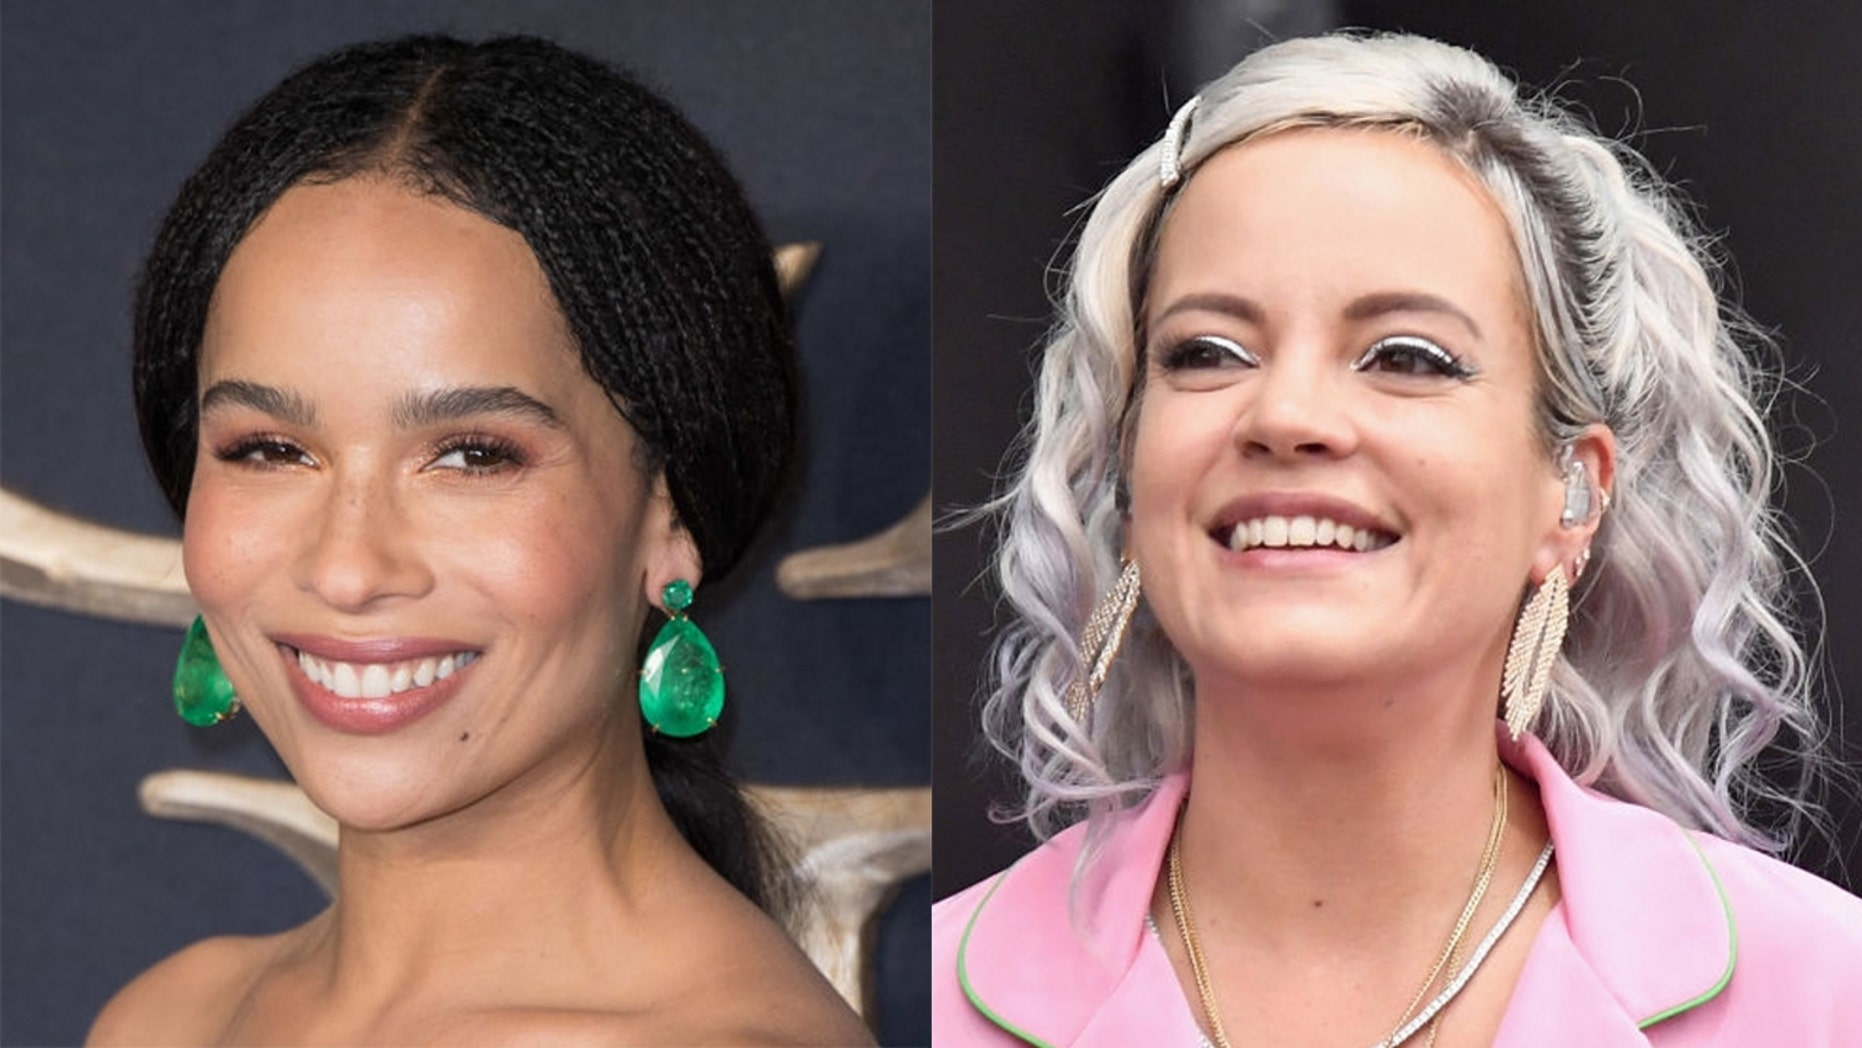 Zoe Kravitz said the kiss she shared with Lily Allen was not consensual.